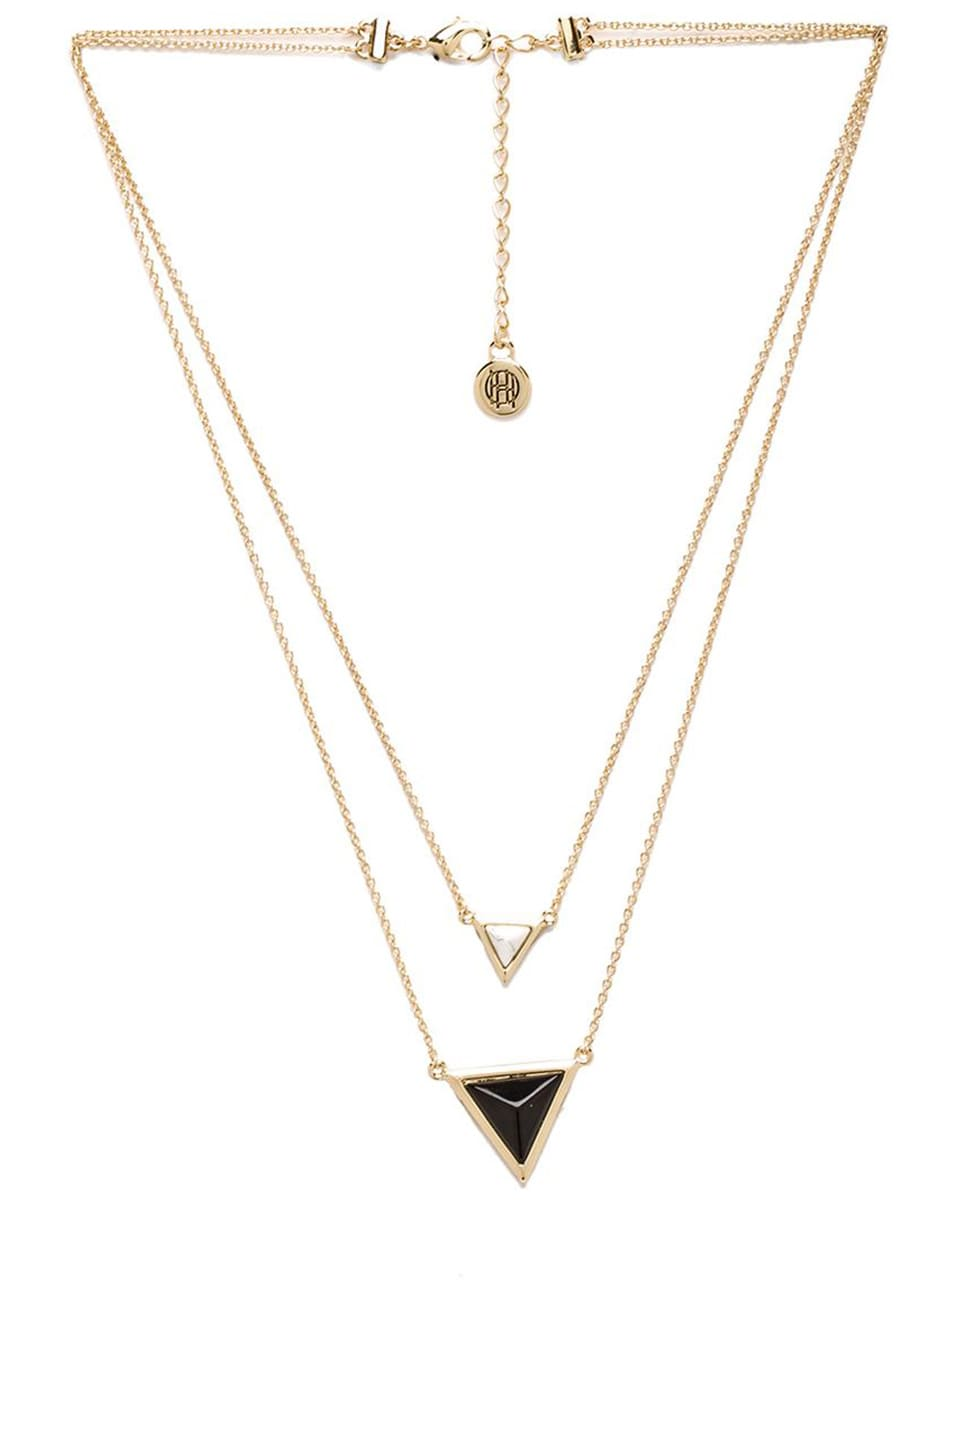 House of Harlow 1960 House of Harlow The Temple Necklace in